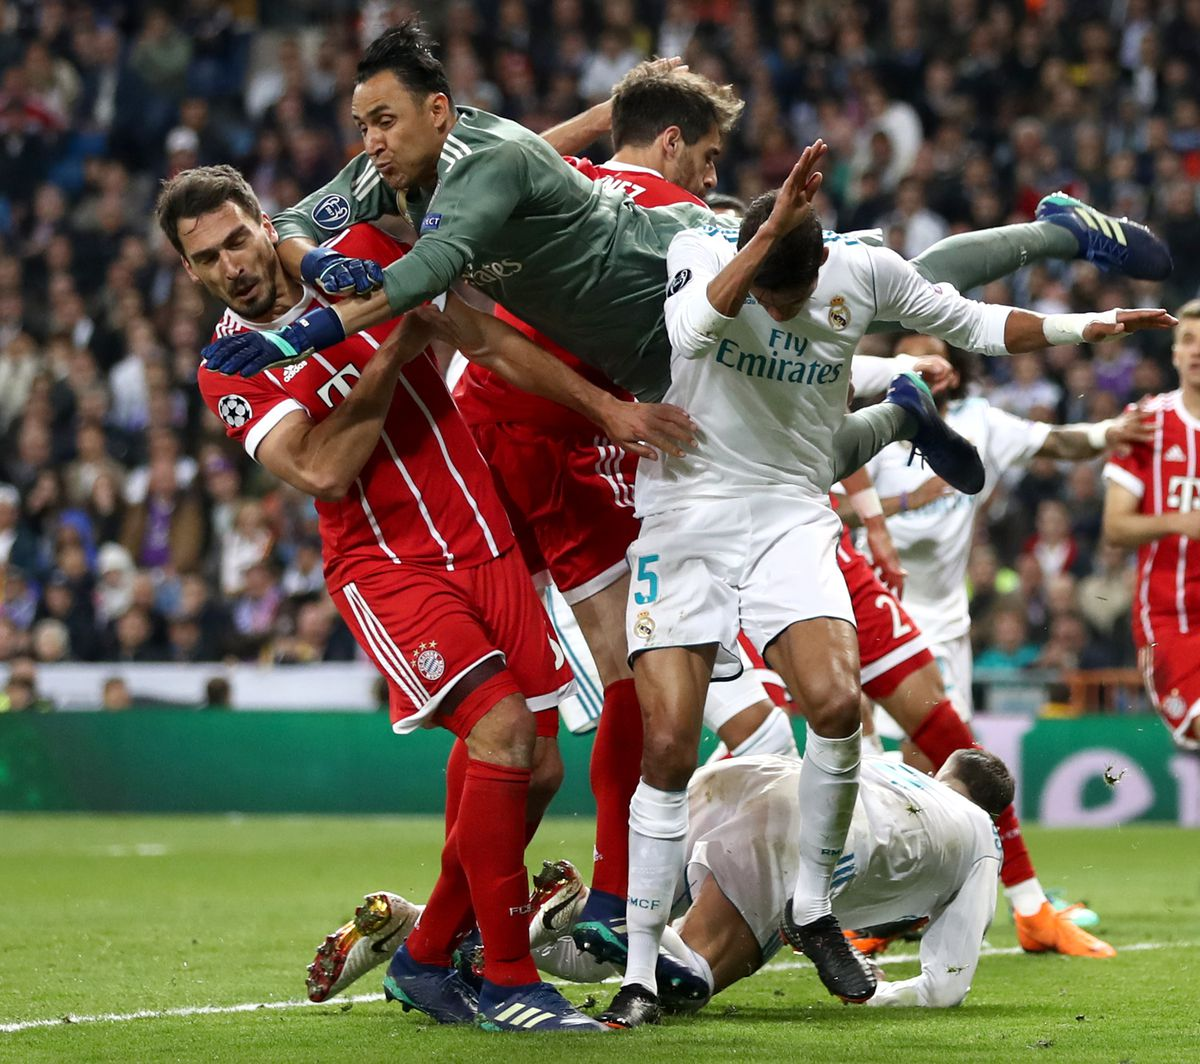 MADRID, SPAIN - MAY 01: Keylor Navas of Real Madrid punches the ball clear under pressure from Mats Hummels of Bayern Muenchen during the UEFA Champions League Semi Final Second Leg match between Real Madrid and Bayern Muenchen at the Bernabeu on May 1, 2018 in Madrid, Spain.